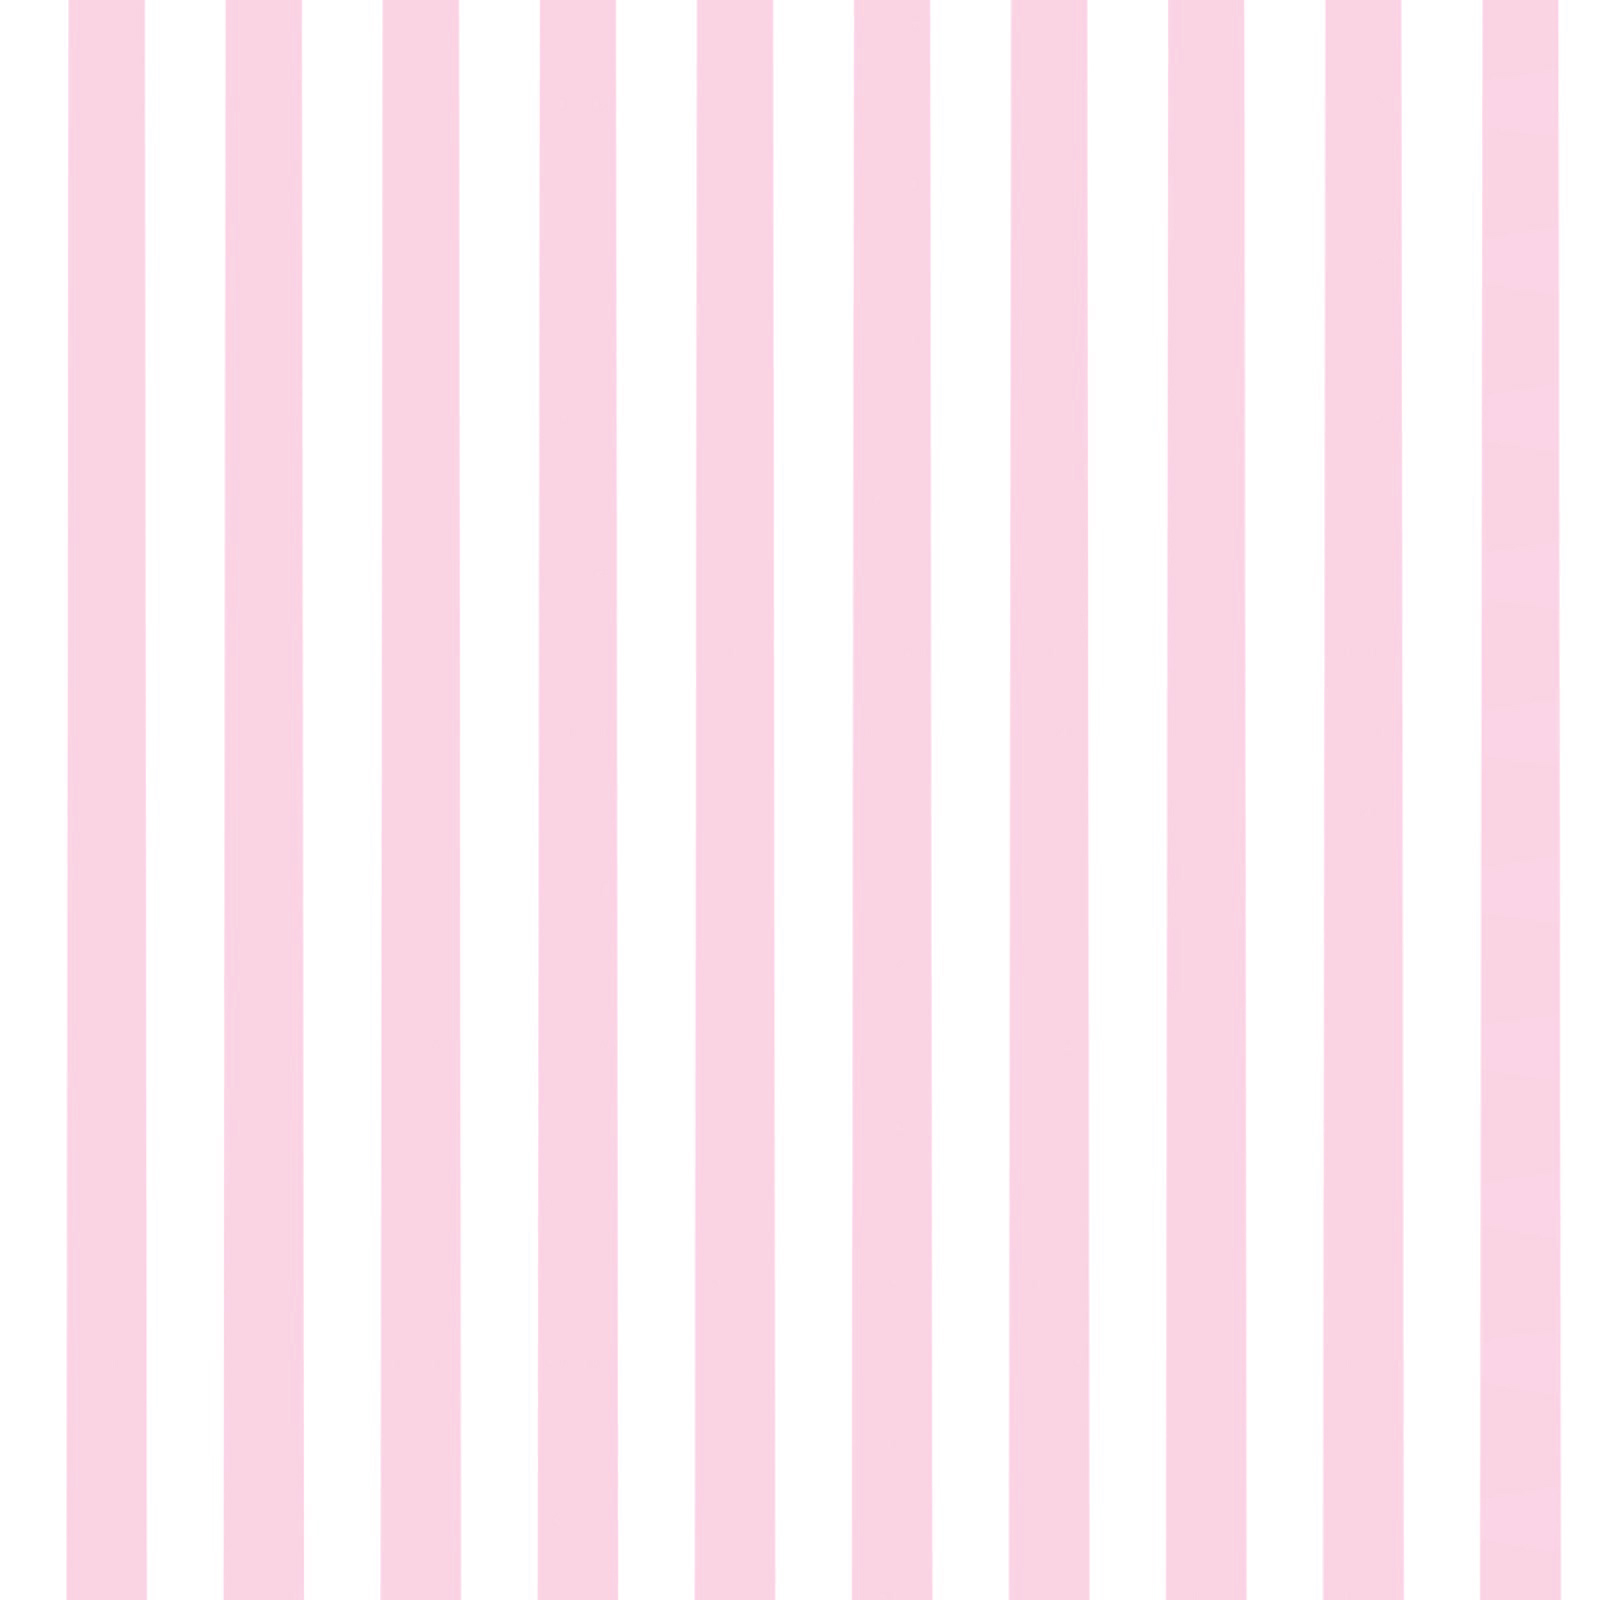 White and pink stripes background